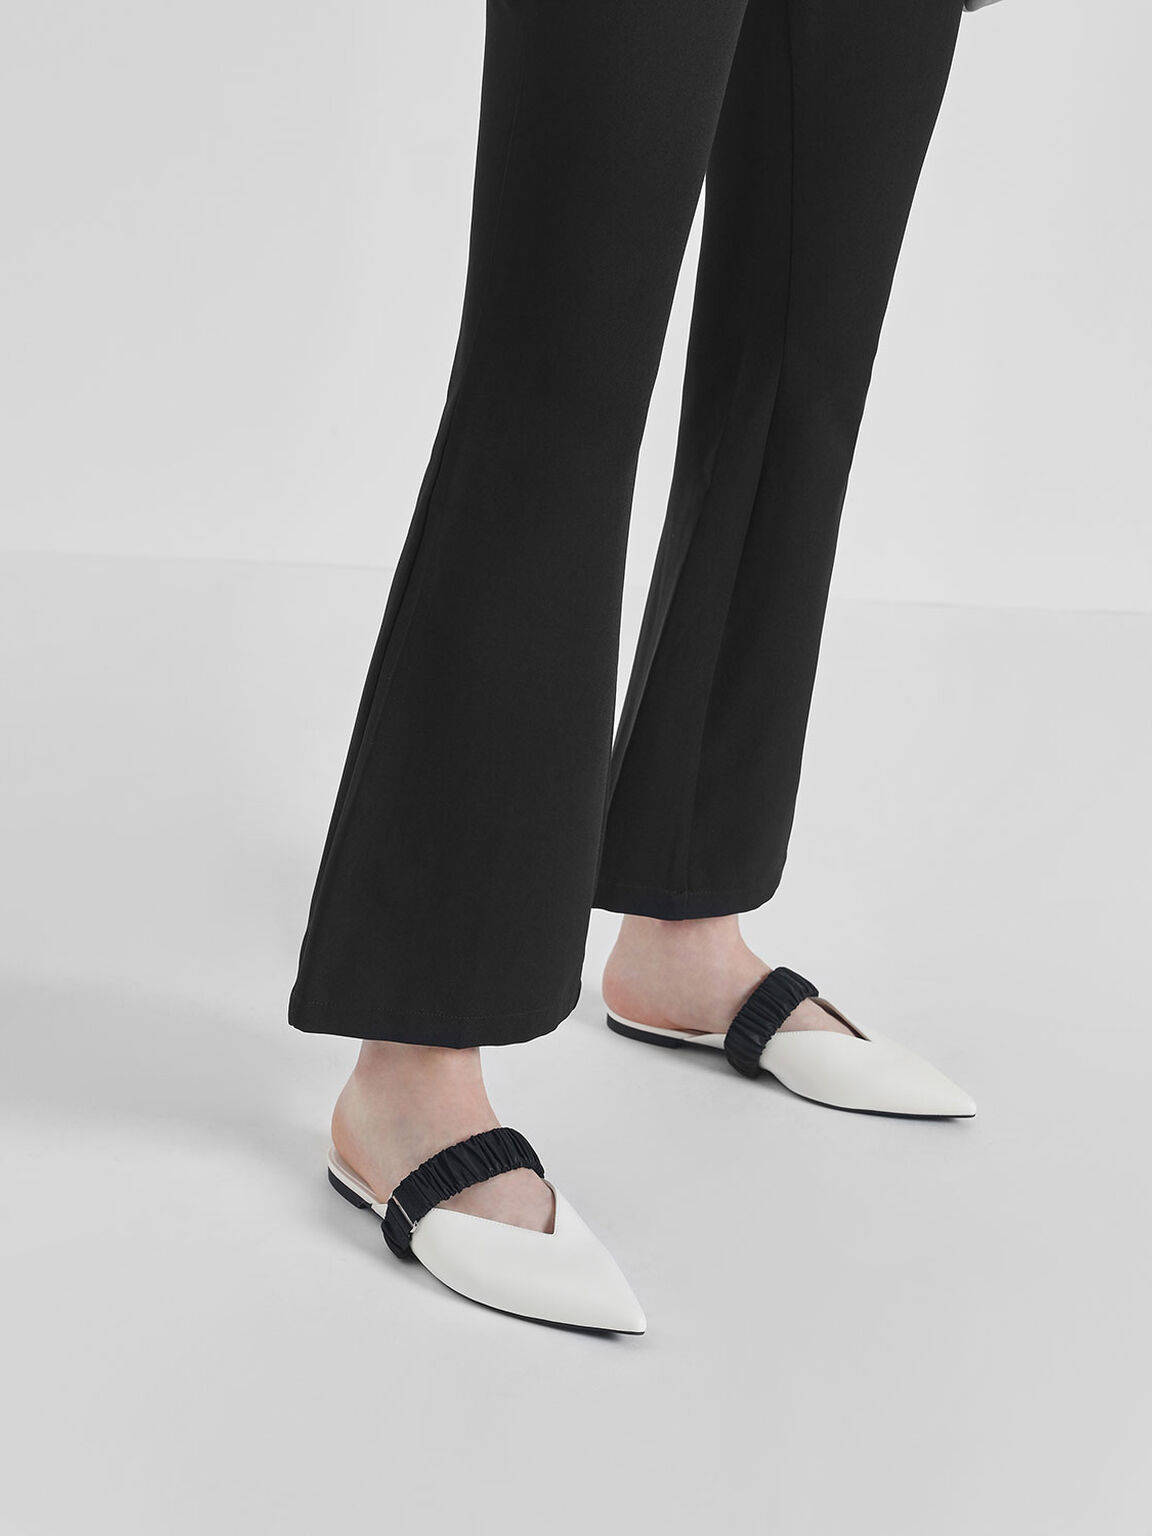 Ruched Band Mules, White, hi-res